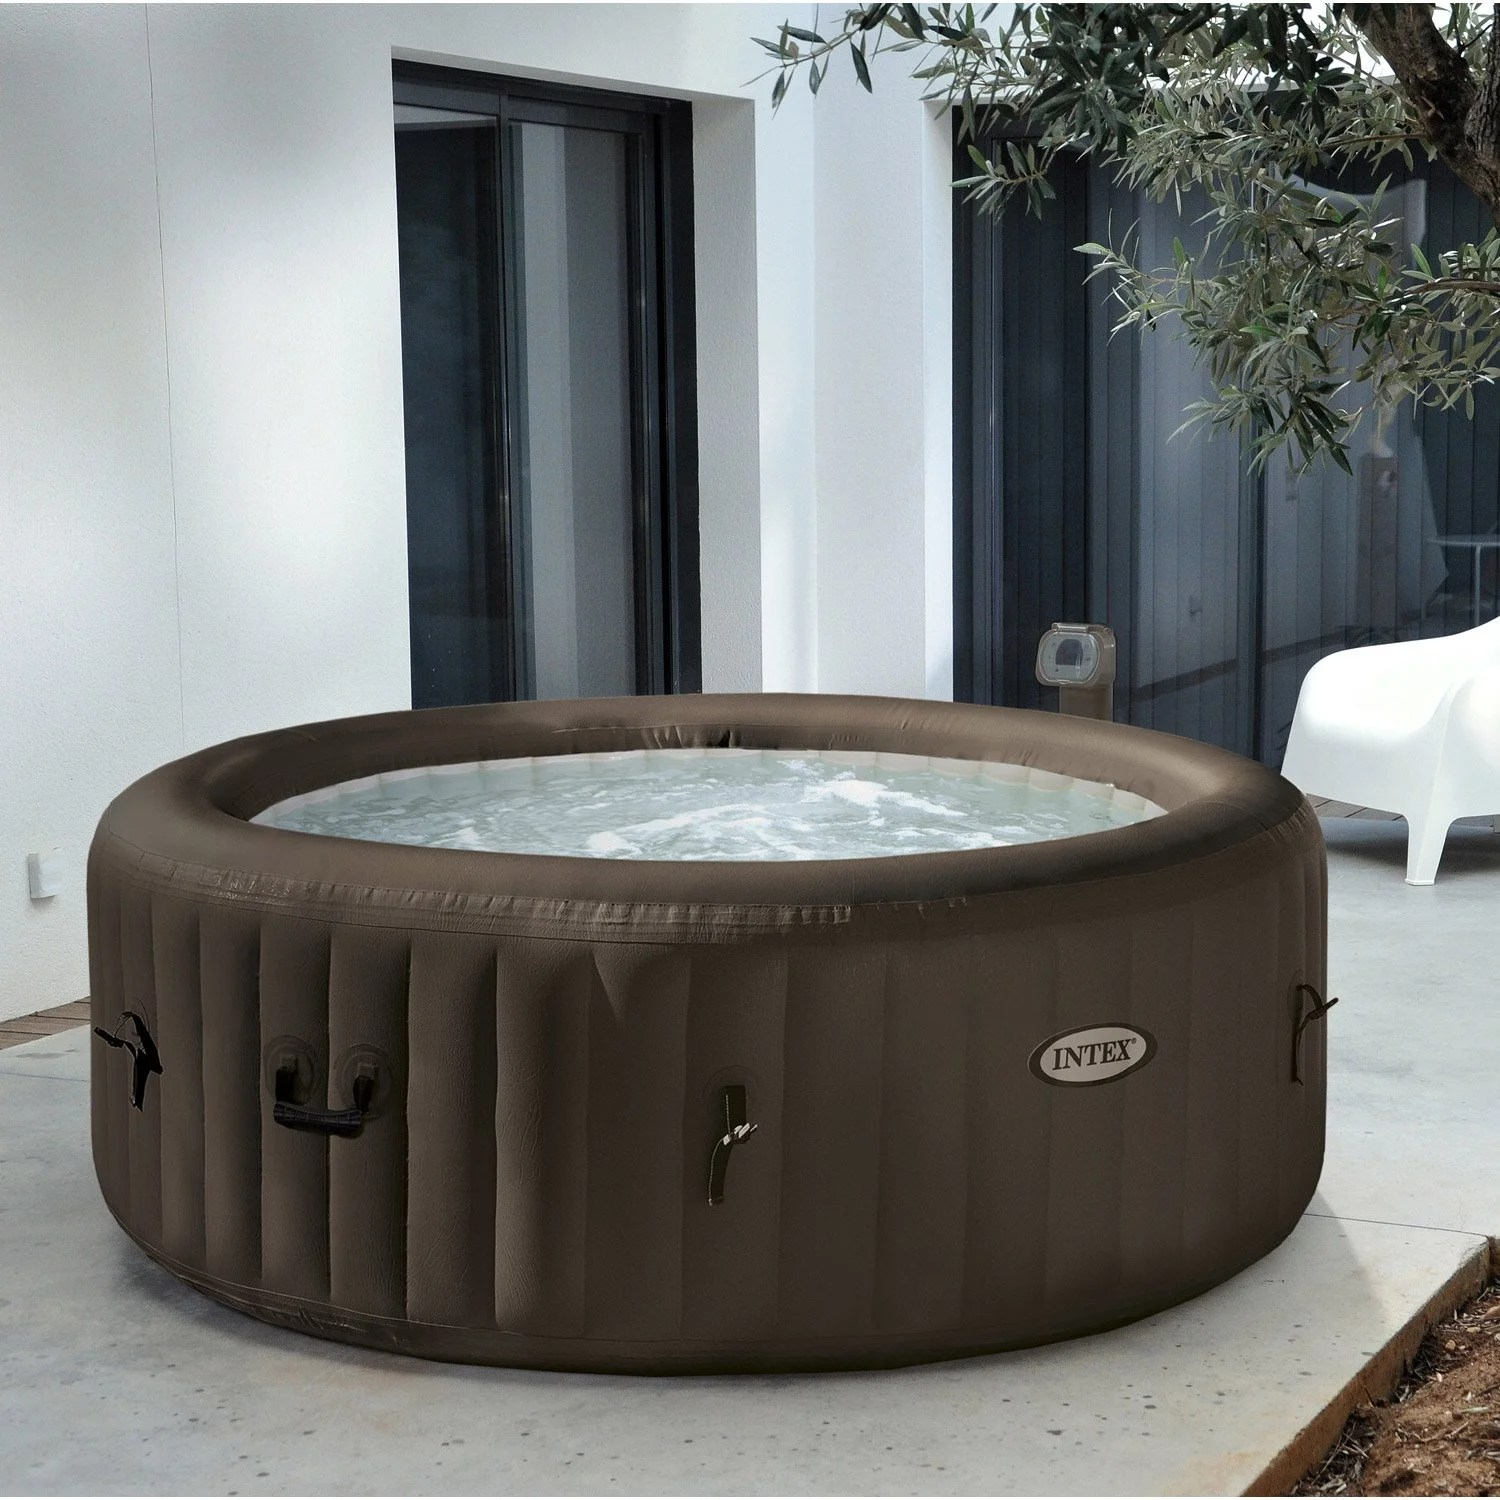 Piscine Spa Gonflable Spa Gonflable Intex Purespa Jets Rond 4 Places Assises